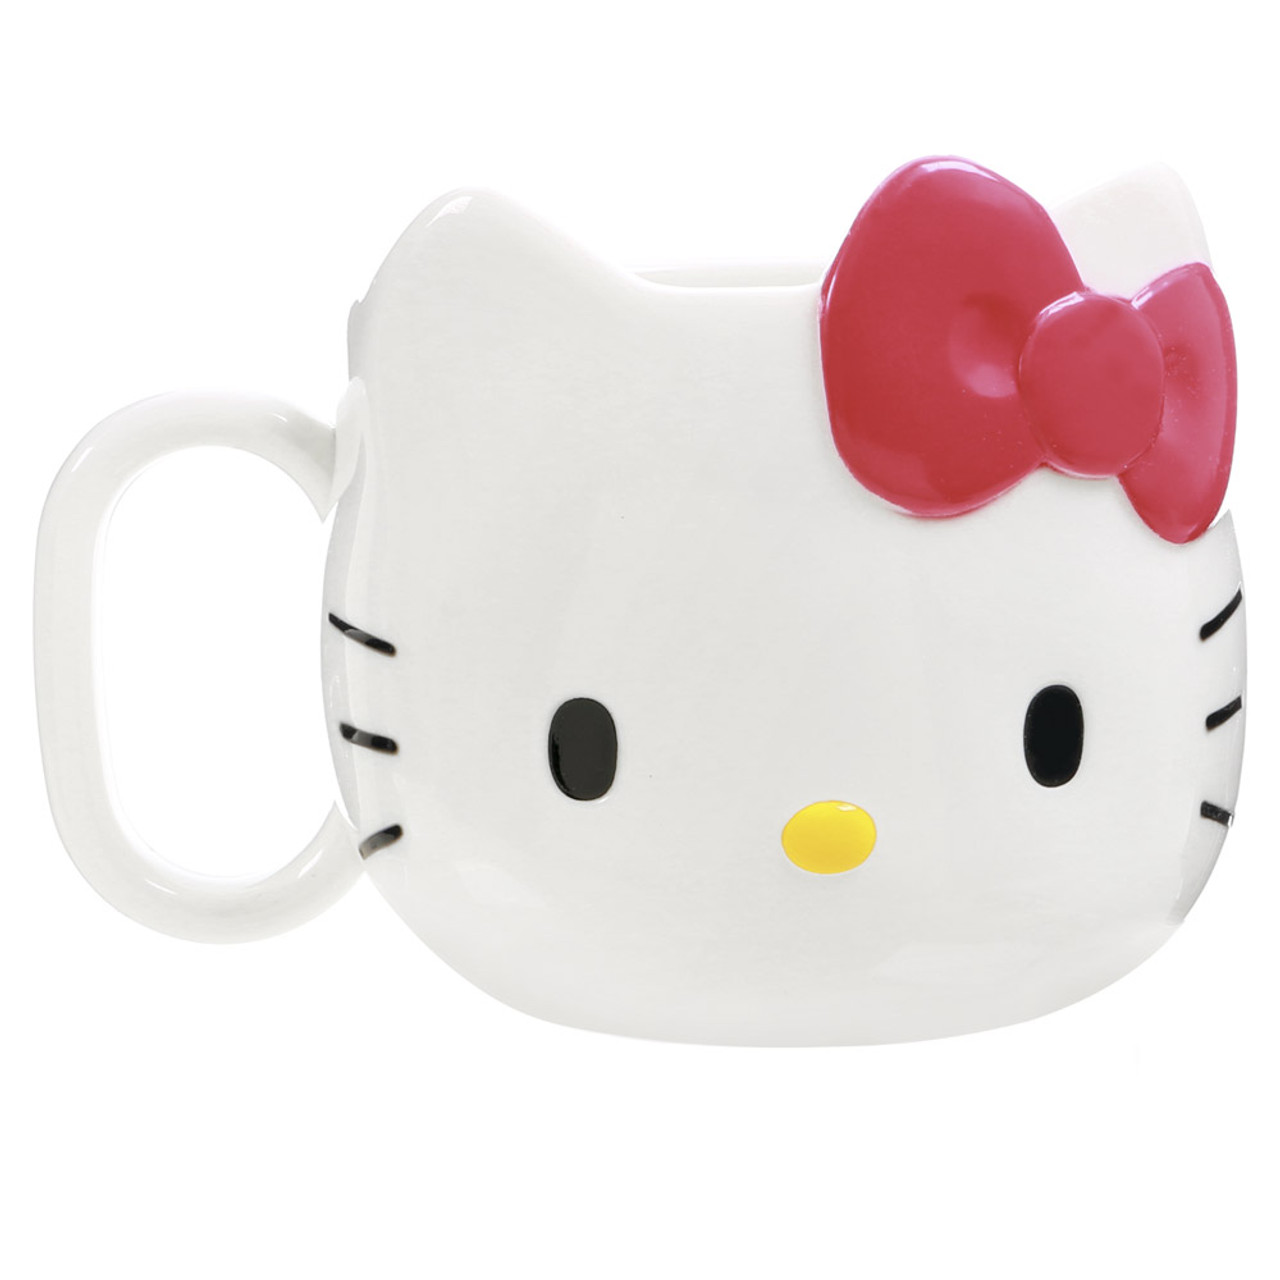 Sanrio Hello Kitty ABS Plastic Cup ( Front View )